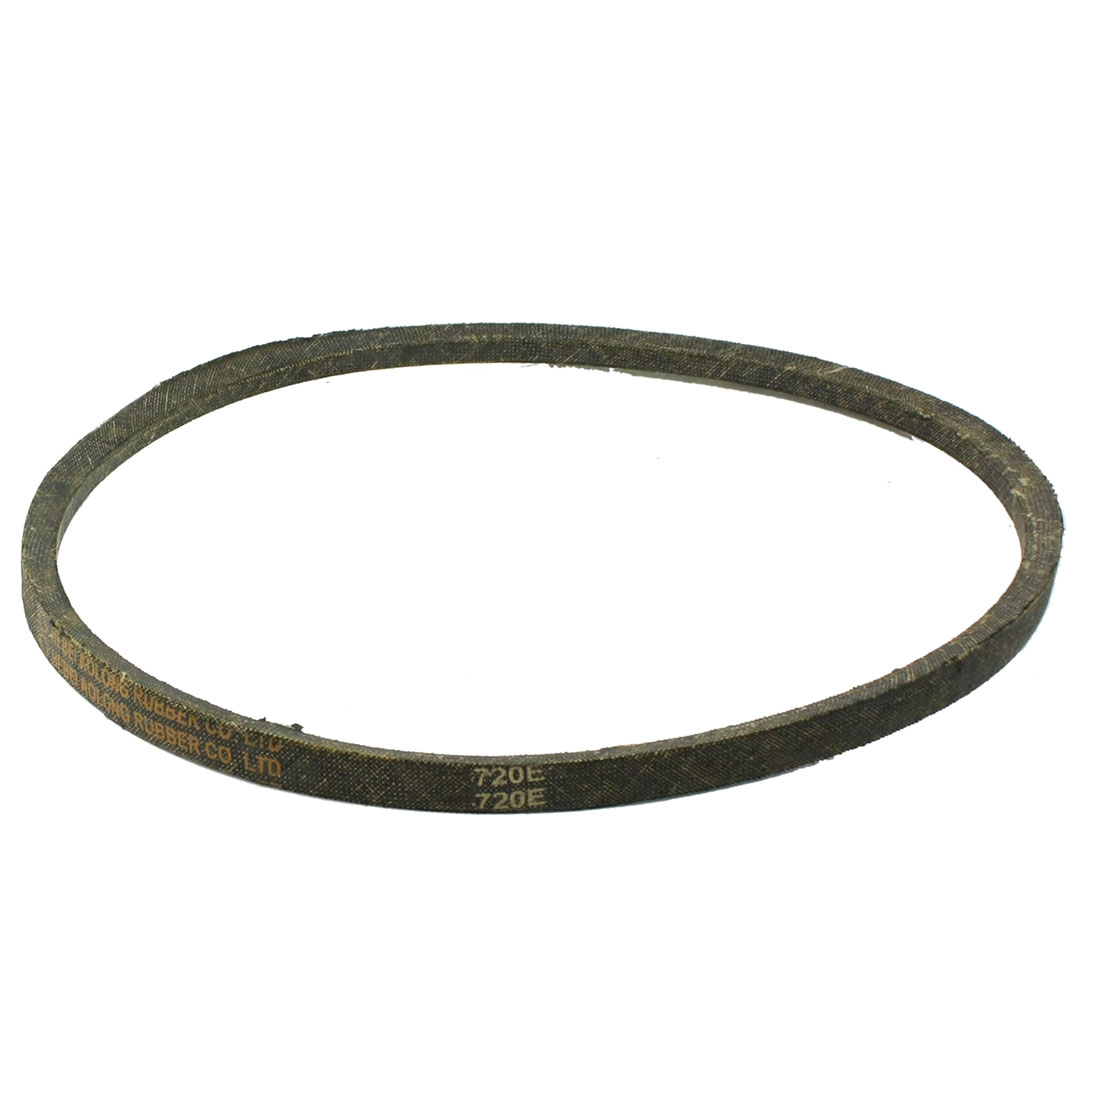 "A-720E 28 11/32"" Girth V Type Rubber Transmission Belt for Washing Machine"